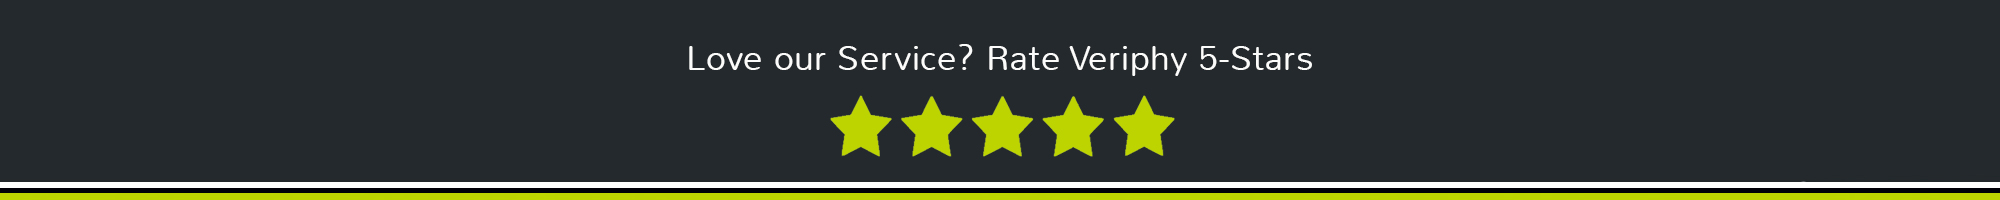 Rate Veriphy 5-Stars